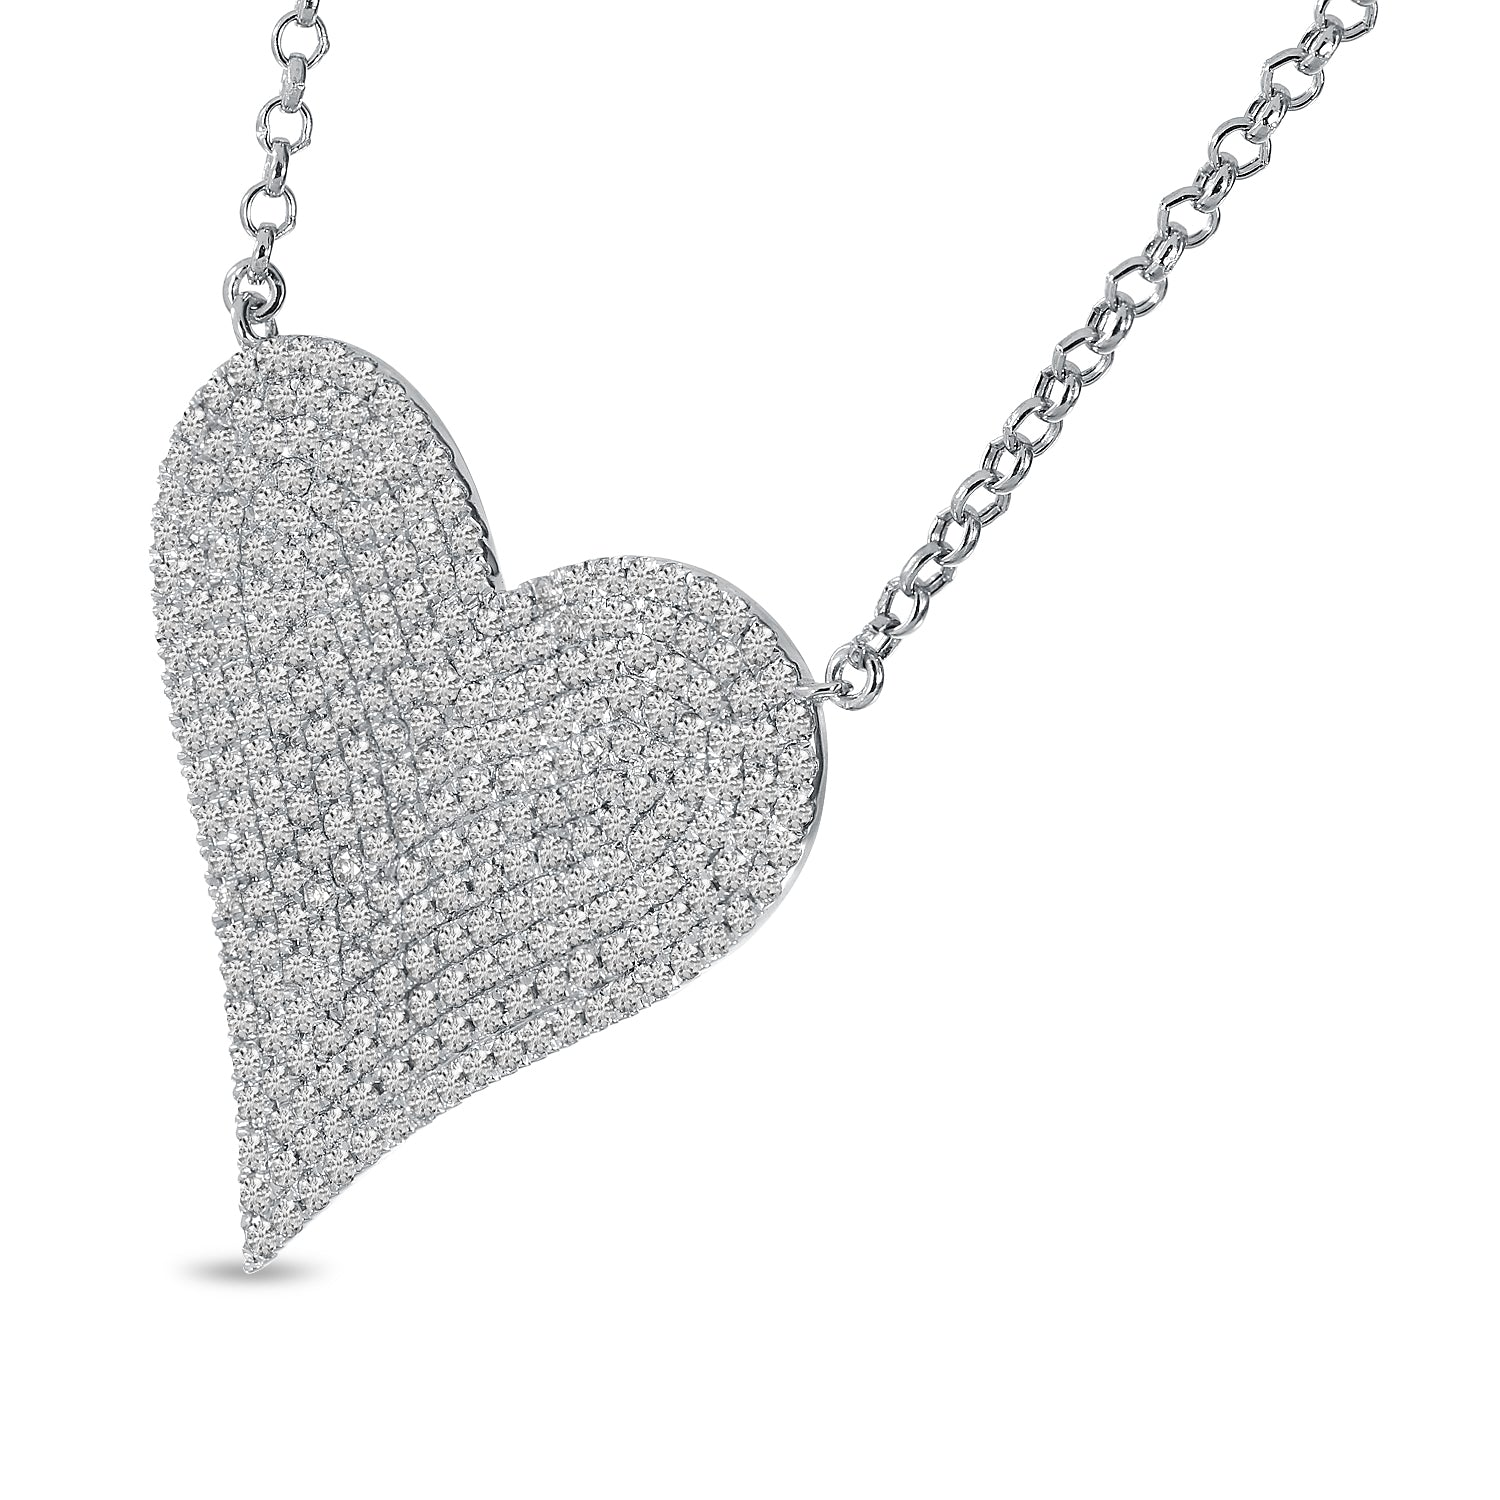 14K White Gold Large Pave 0.91ct. Diamond Heart Necklace